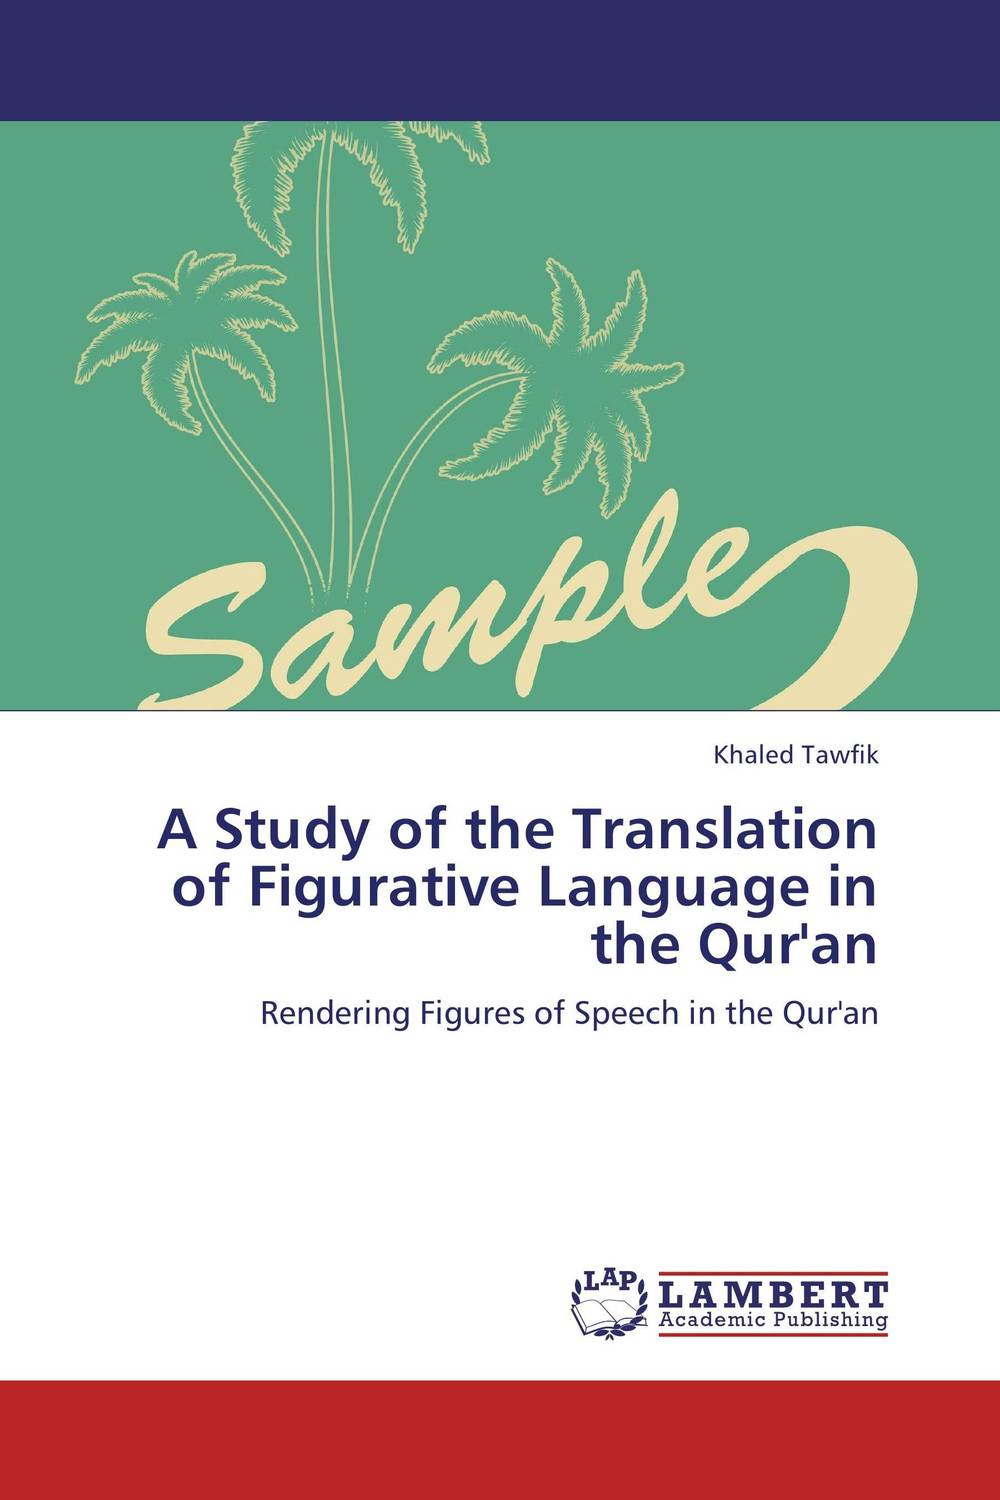 A Study of the Translation of Figurative Language in the Qur'an suleman dangor shaykh yusuf of macassar